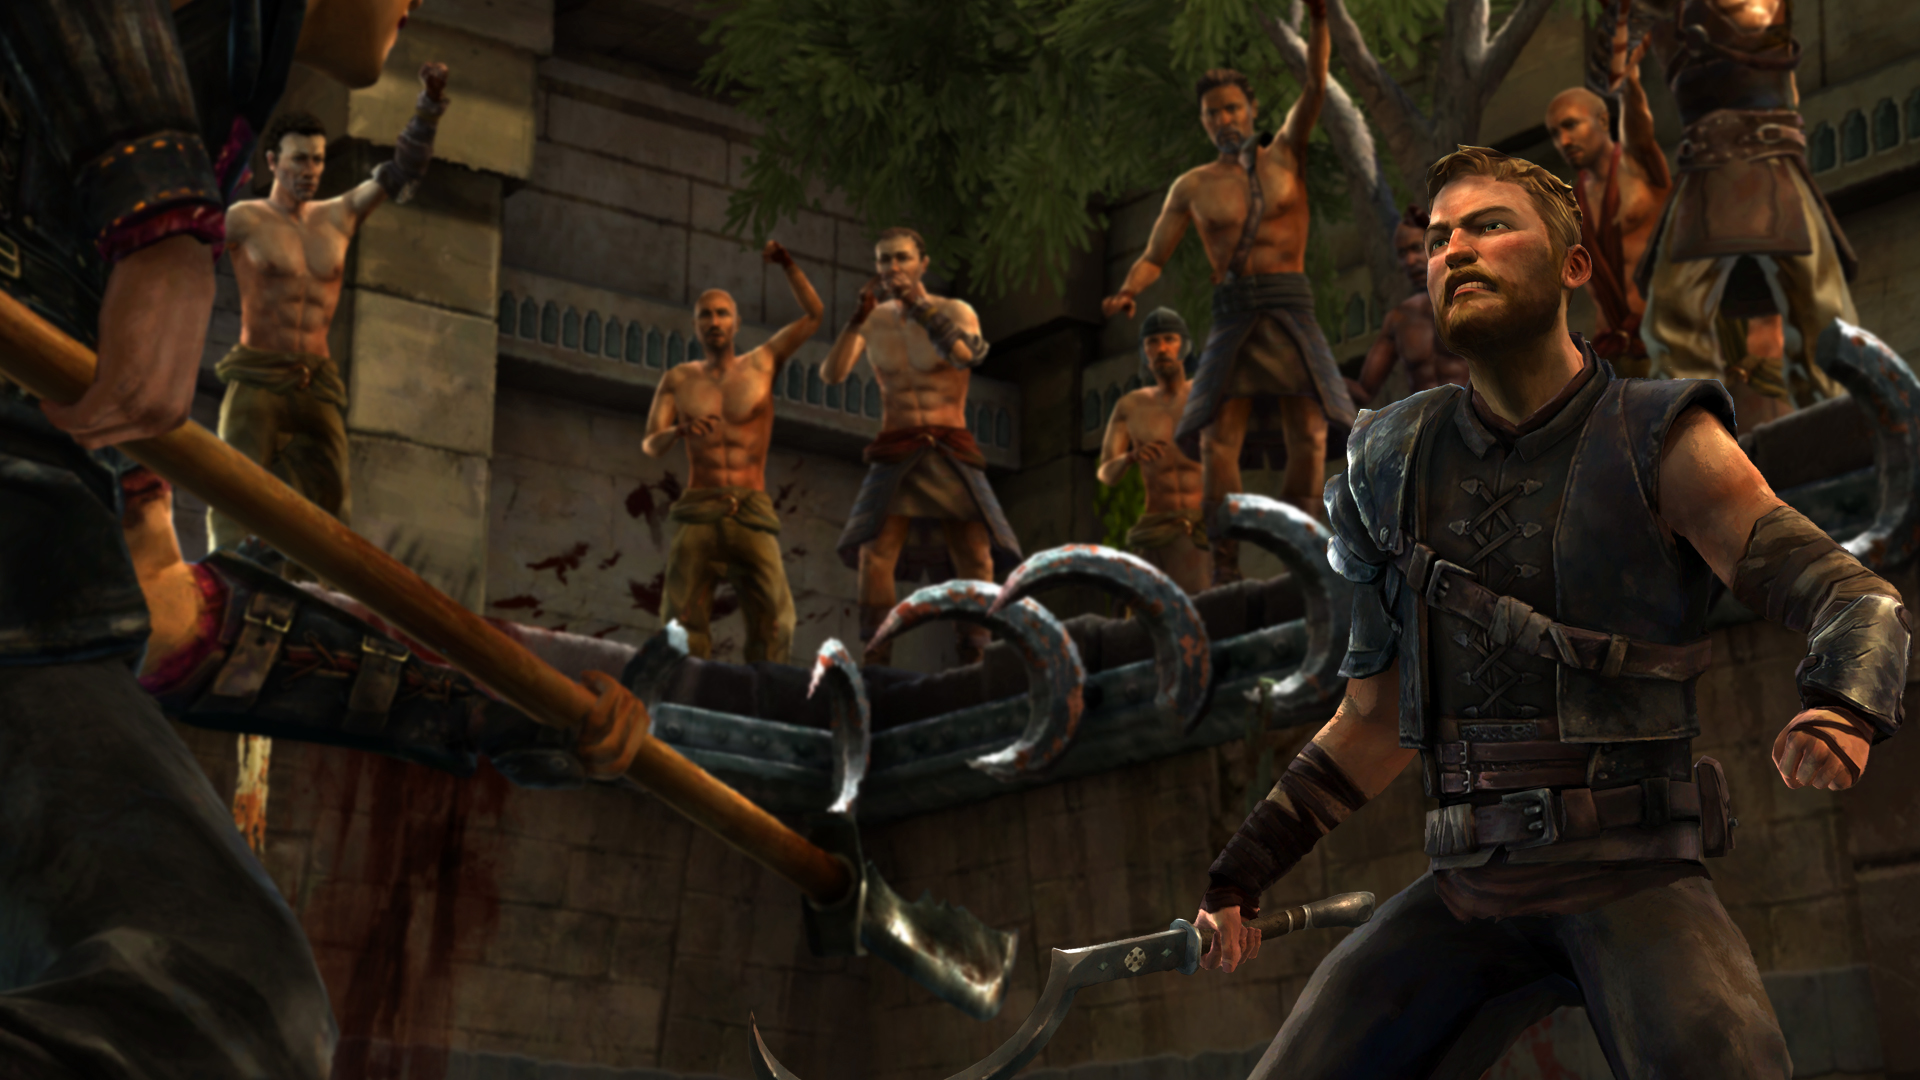 Game of Thrones: A Telltale Games Series screenshot 1